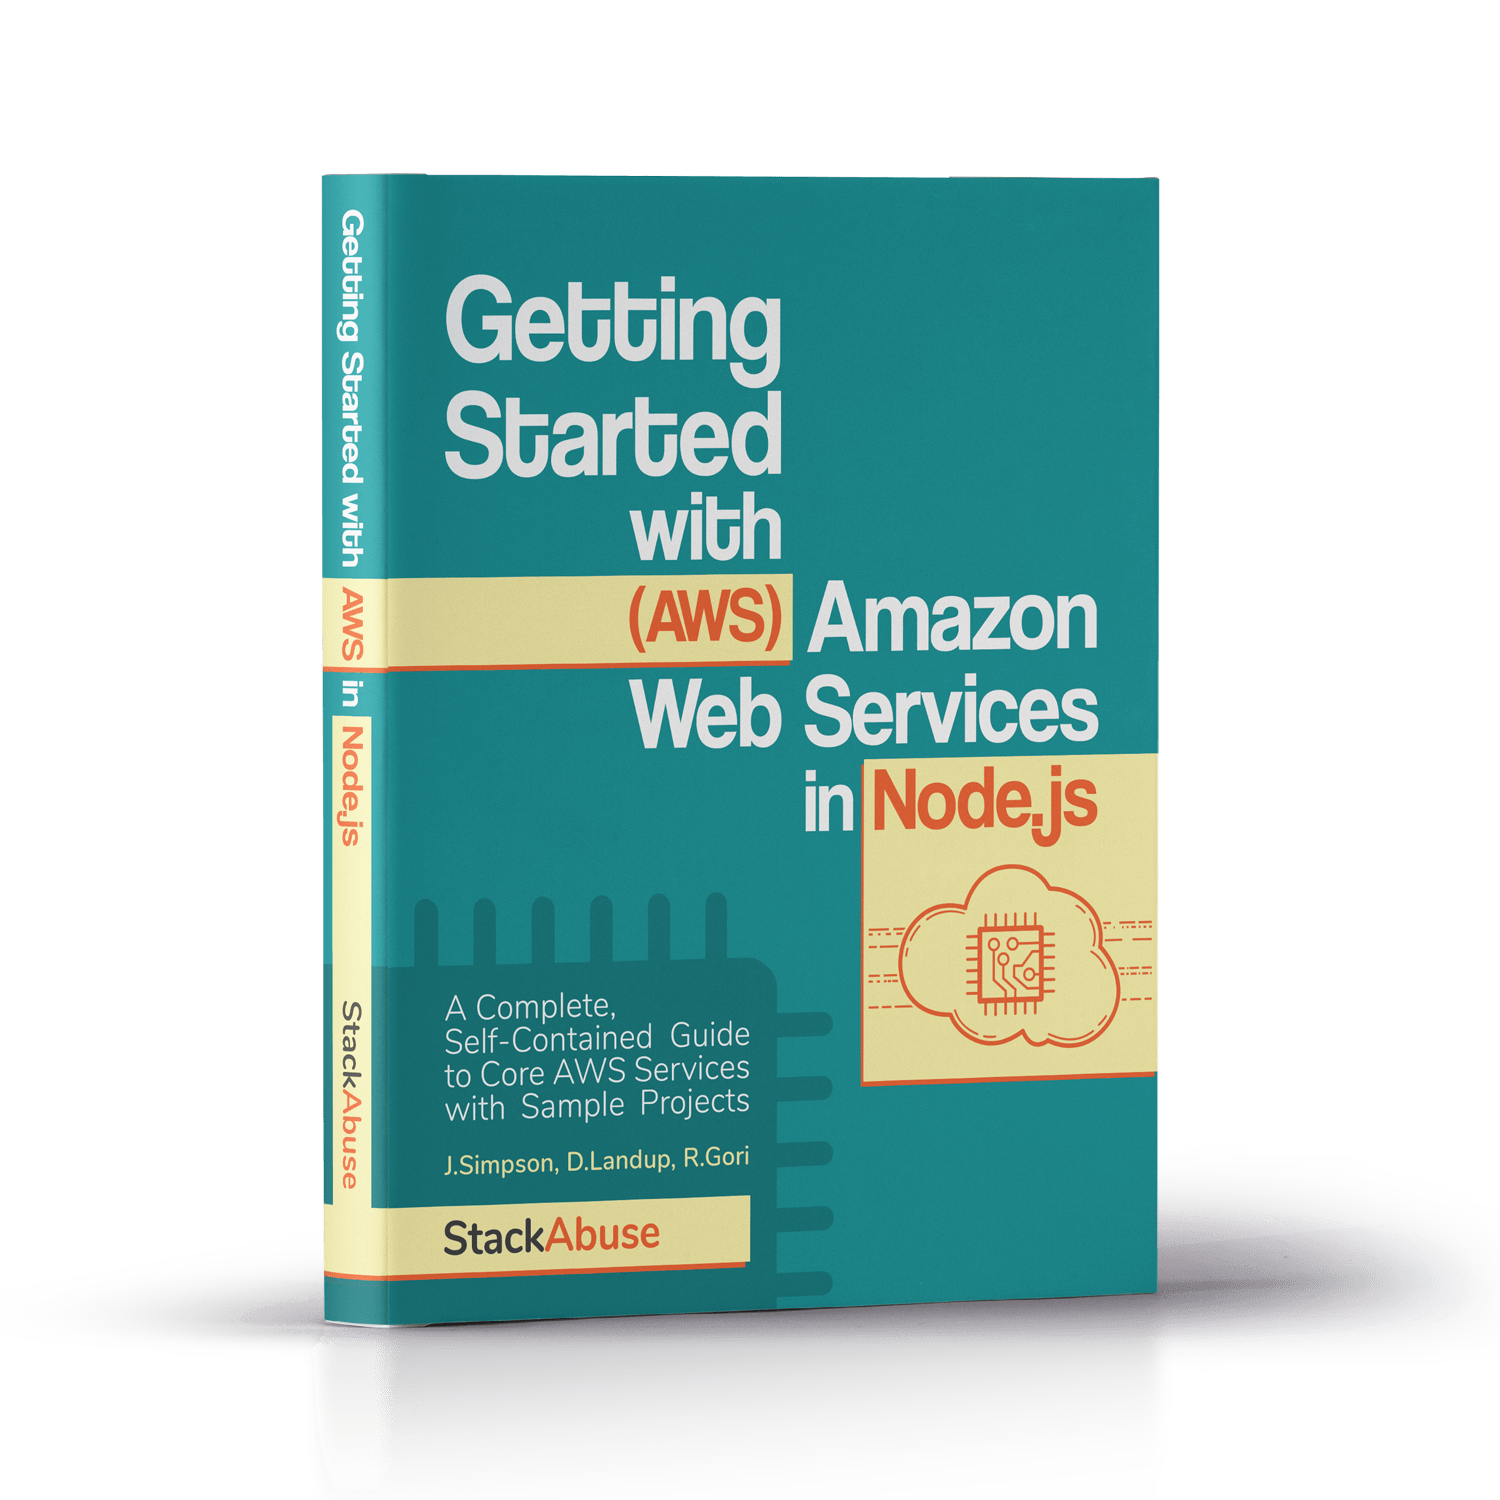 Image of the Getting Started with Amazon Web Services in Node